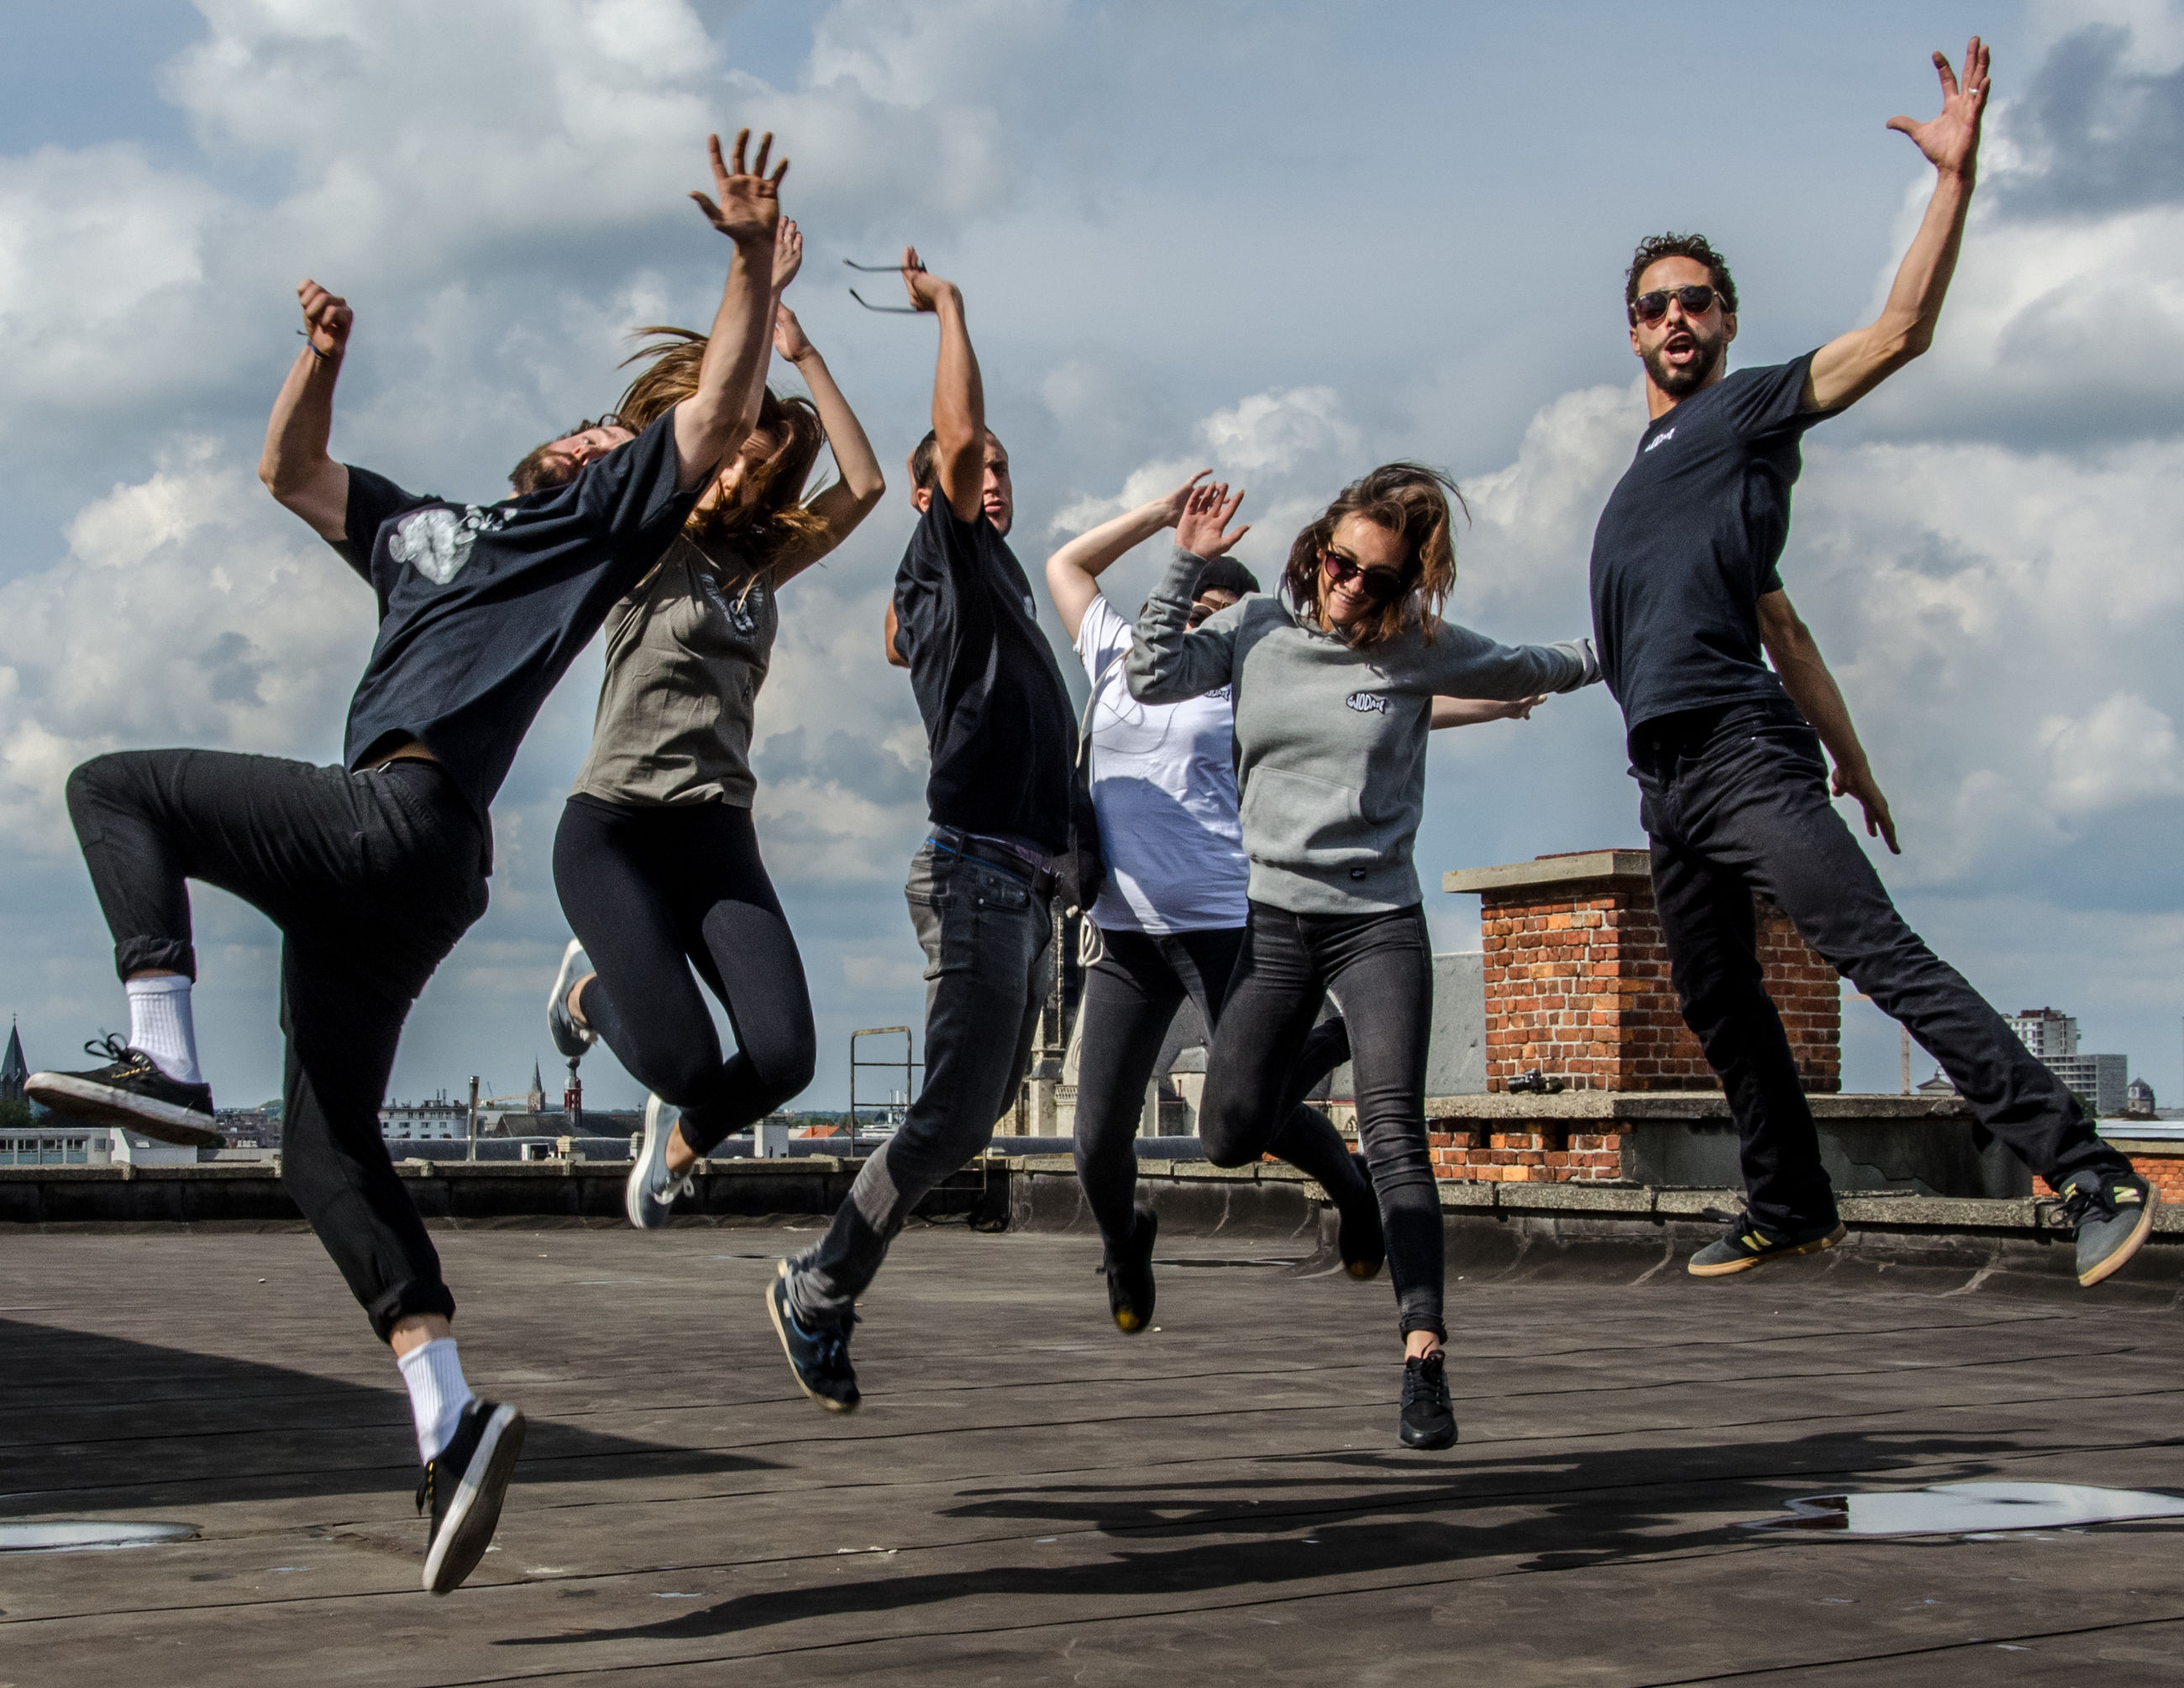 jumping, full length, motion, leisure activity, mid-air, sky, vitality, dancing, real people, outdoors, day, lifestyles, enjoyment, casual clothing, fun, cloud - sky, skill, low angle view, men, smiling, togetherness, happiness, friendship, energetic, breakdancing, young adult